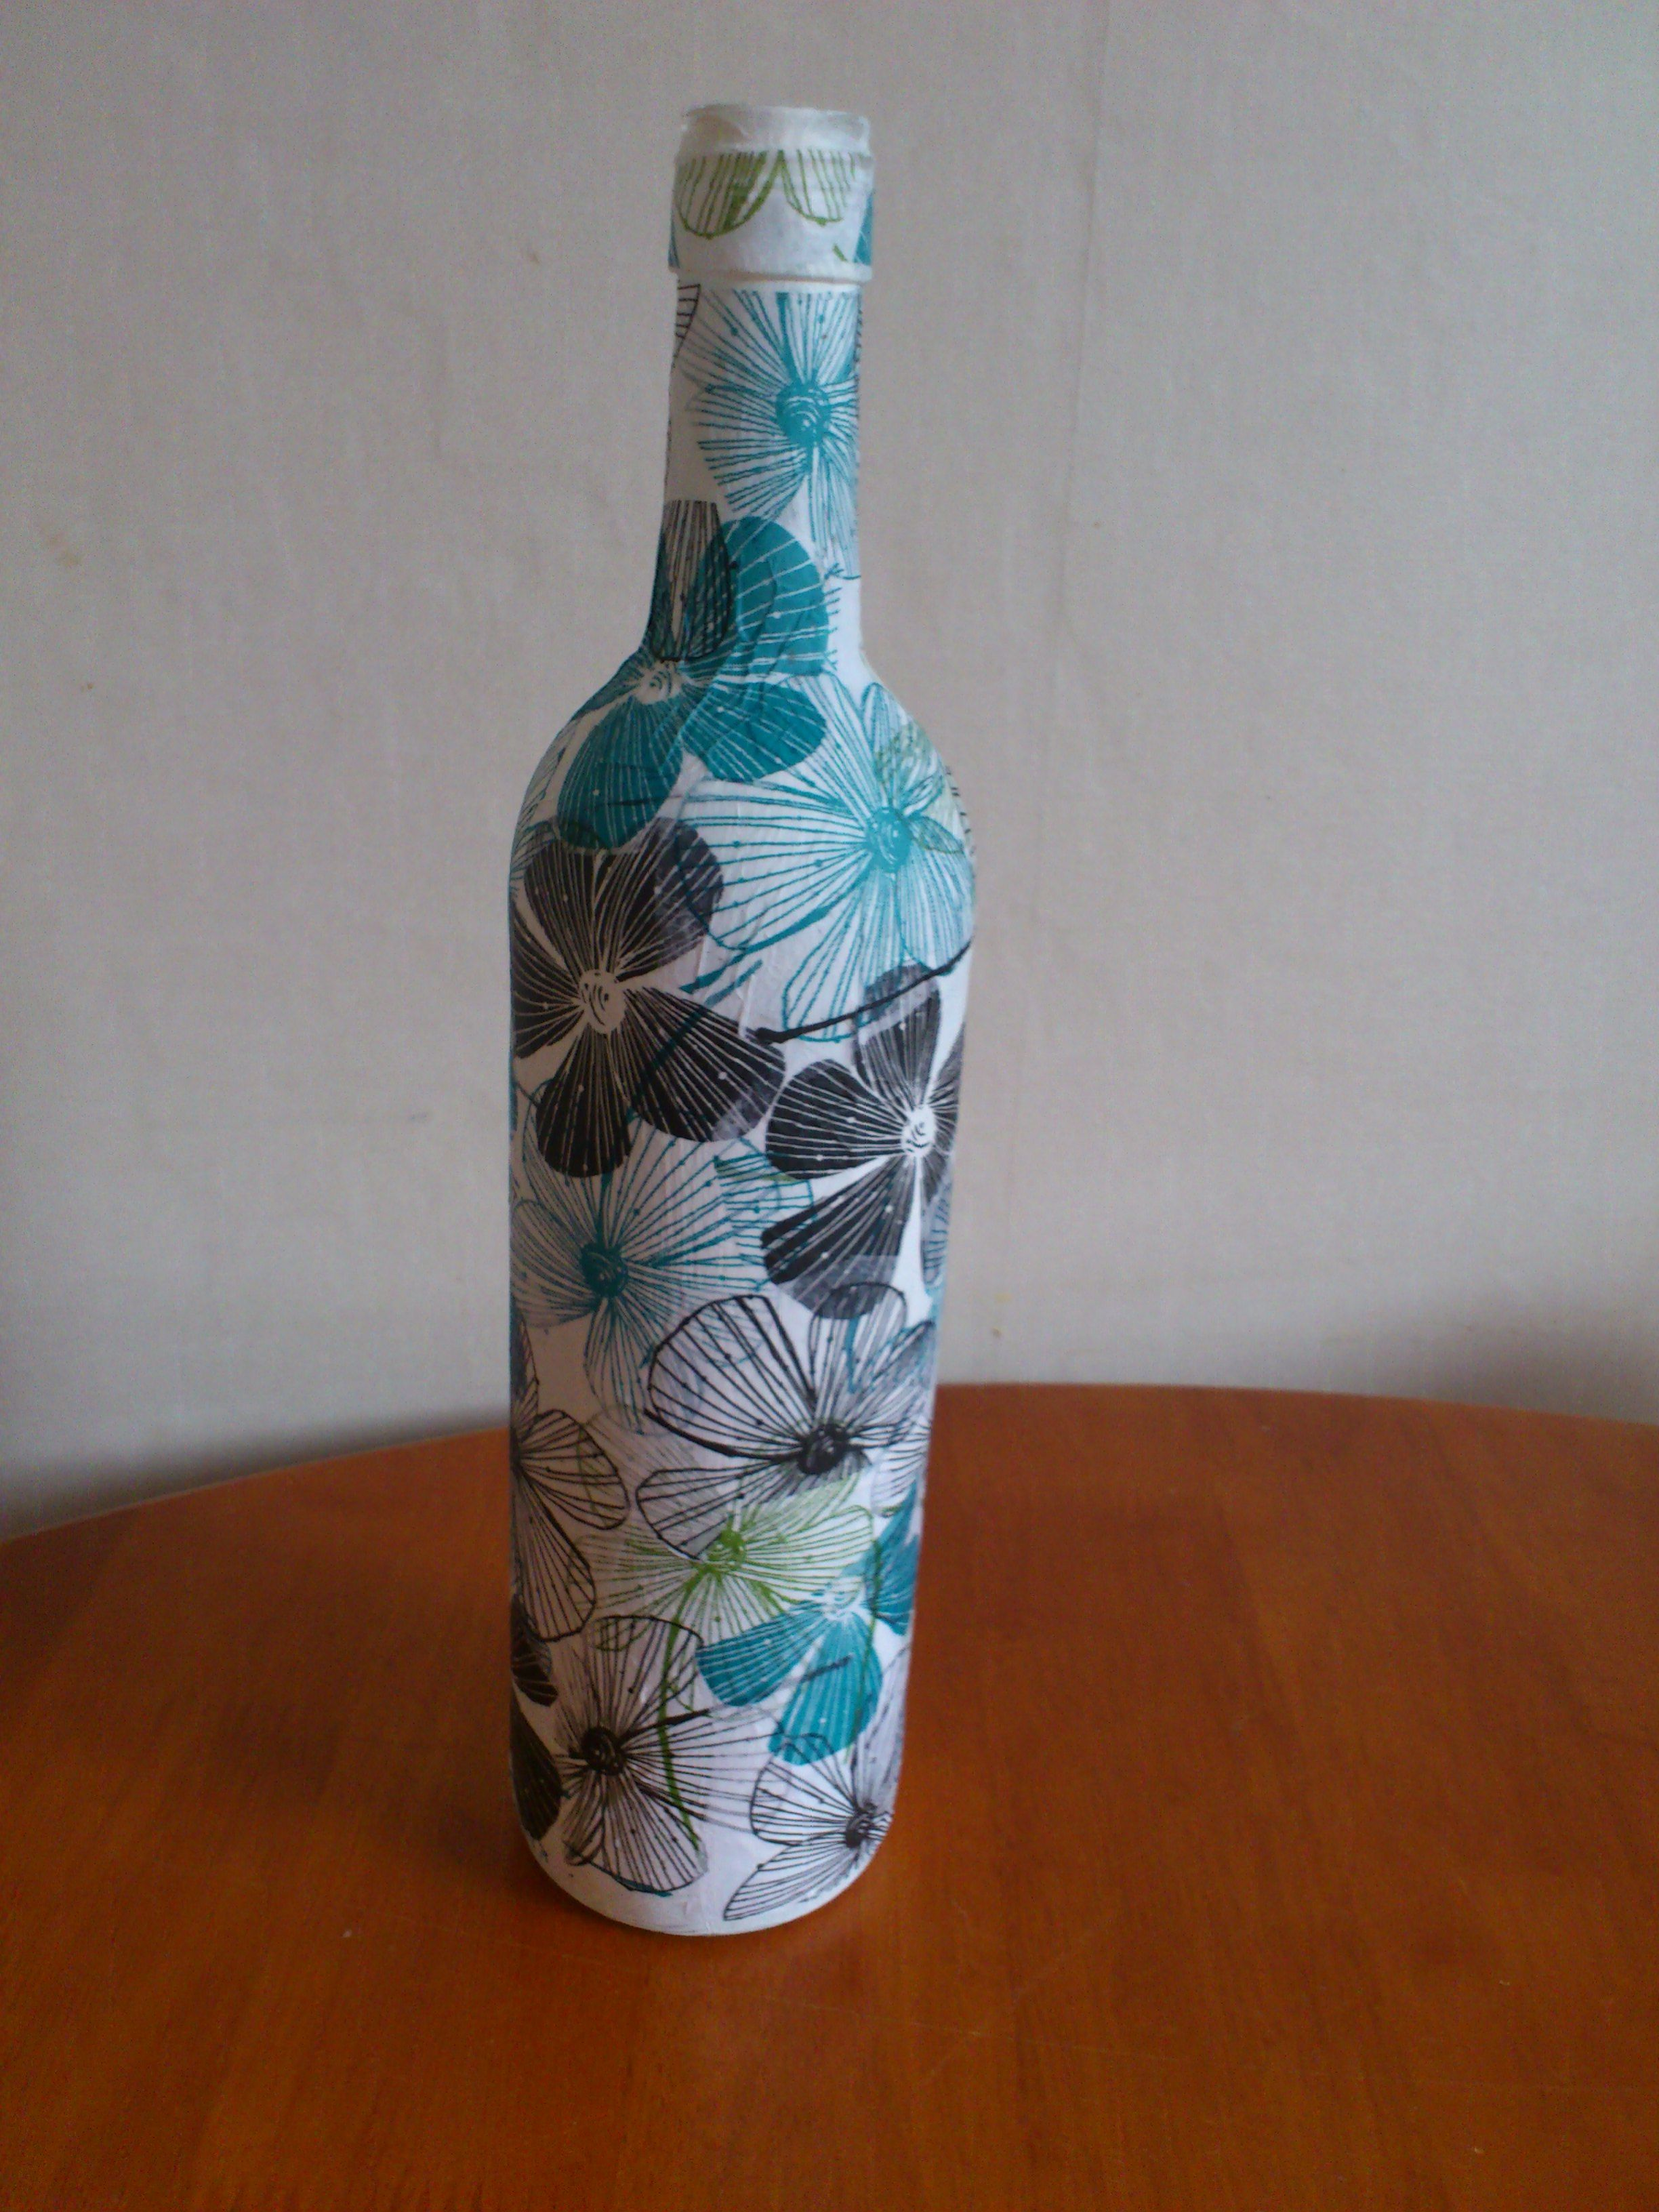 Diy wine bottle using pva glue and tissue paper artsy for Wine diy projects